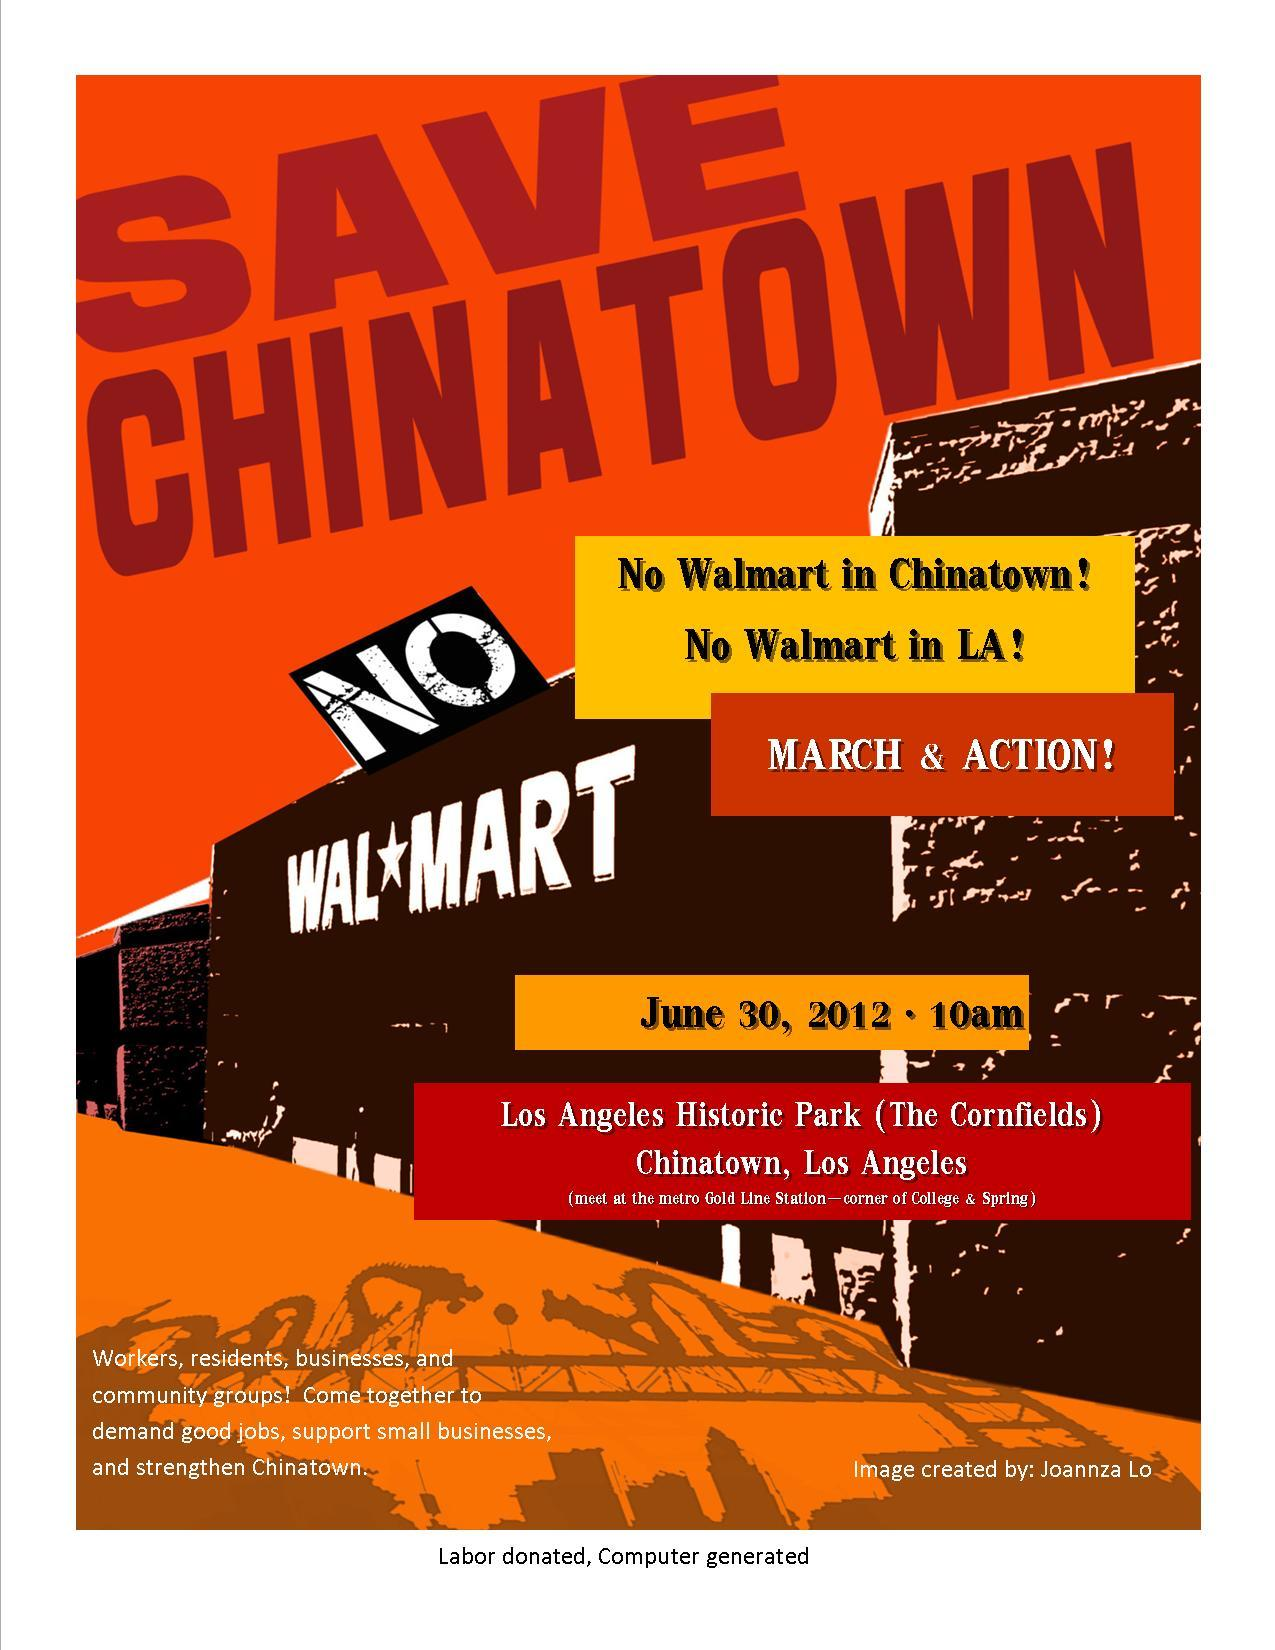 NO WALMART IN CHINATOWN! 反對沃爾瑪在唐人街! NO WALMART IN LOS ANGELES! 反對沃爾瑪在洛杉磯!  Saturday June 30, 2012 @ 10AM | 2012年6月30日,早上10點鐘 L.A. State Historic Park | 洛杉磯唐人街玉米田(Cornfields)公園  (Meet at College and Spring, Metro Gold Line Chinatown station for Community Contingent) (請大家聚集在华埠金線地鐵站 , Spring街和College街) Join workers, residents, small businesses and community groups in history's largest anti-Walmart march!  Come together to demand good jobs, support small businesses, and strengthen Chinatown! 請參與我們的示威遊行! 員工,居民,商業與社區組織團結起來要求良好的就業機會与支持小生意, 使我們的唐人街更加繁榮! Chinatown Community for Equitable Development (CCED) |華埠公平發展會 FMI | 請聯絡 213-986-8887 或 ccedchinatown@gmail.com Blog | 網站: http://nowalmartinchinatown.tumblr.com/ Video |視頻: Click here to watch the video and share it. CCED is an all-volunteer group of residents, students, teachers, and businesses united for a better Chinatown. | CCED 是由居民 , 學生 , 教師及企業家為建設更好的華埠 , 聯合組成的義工團